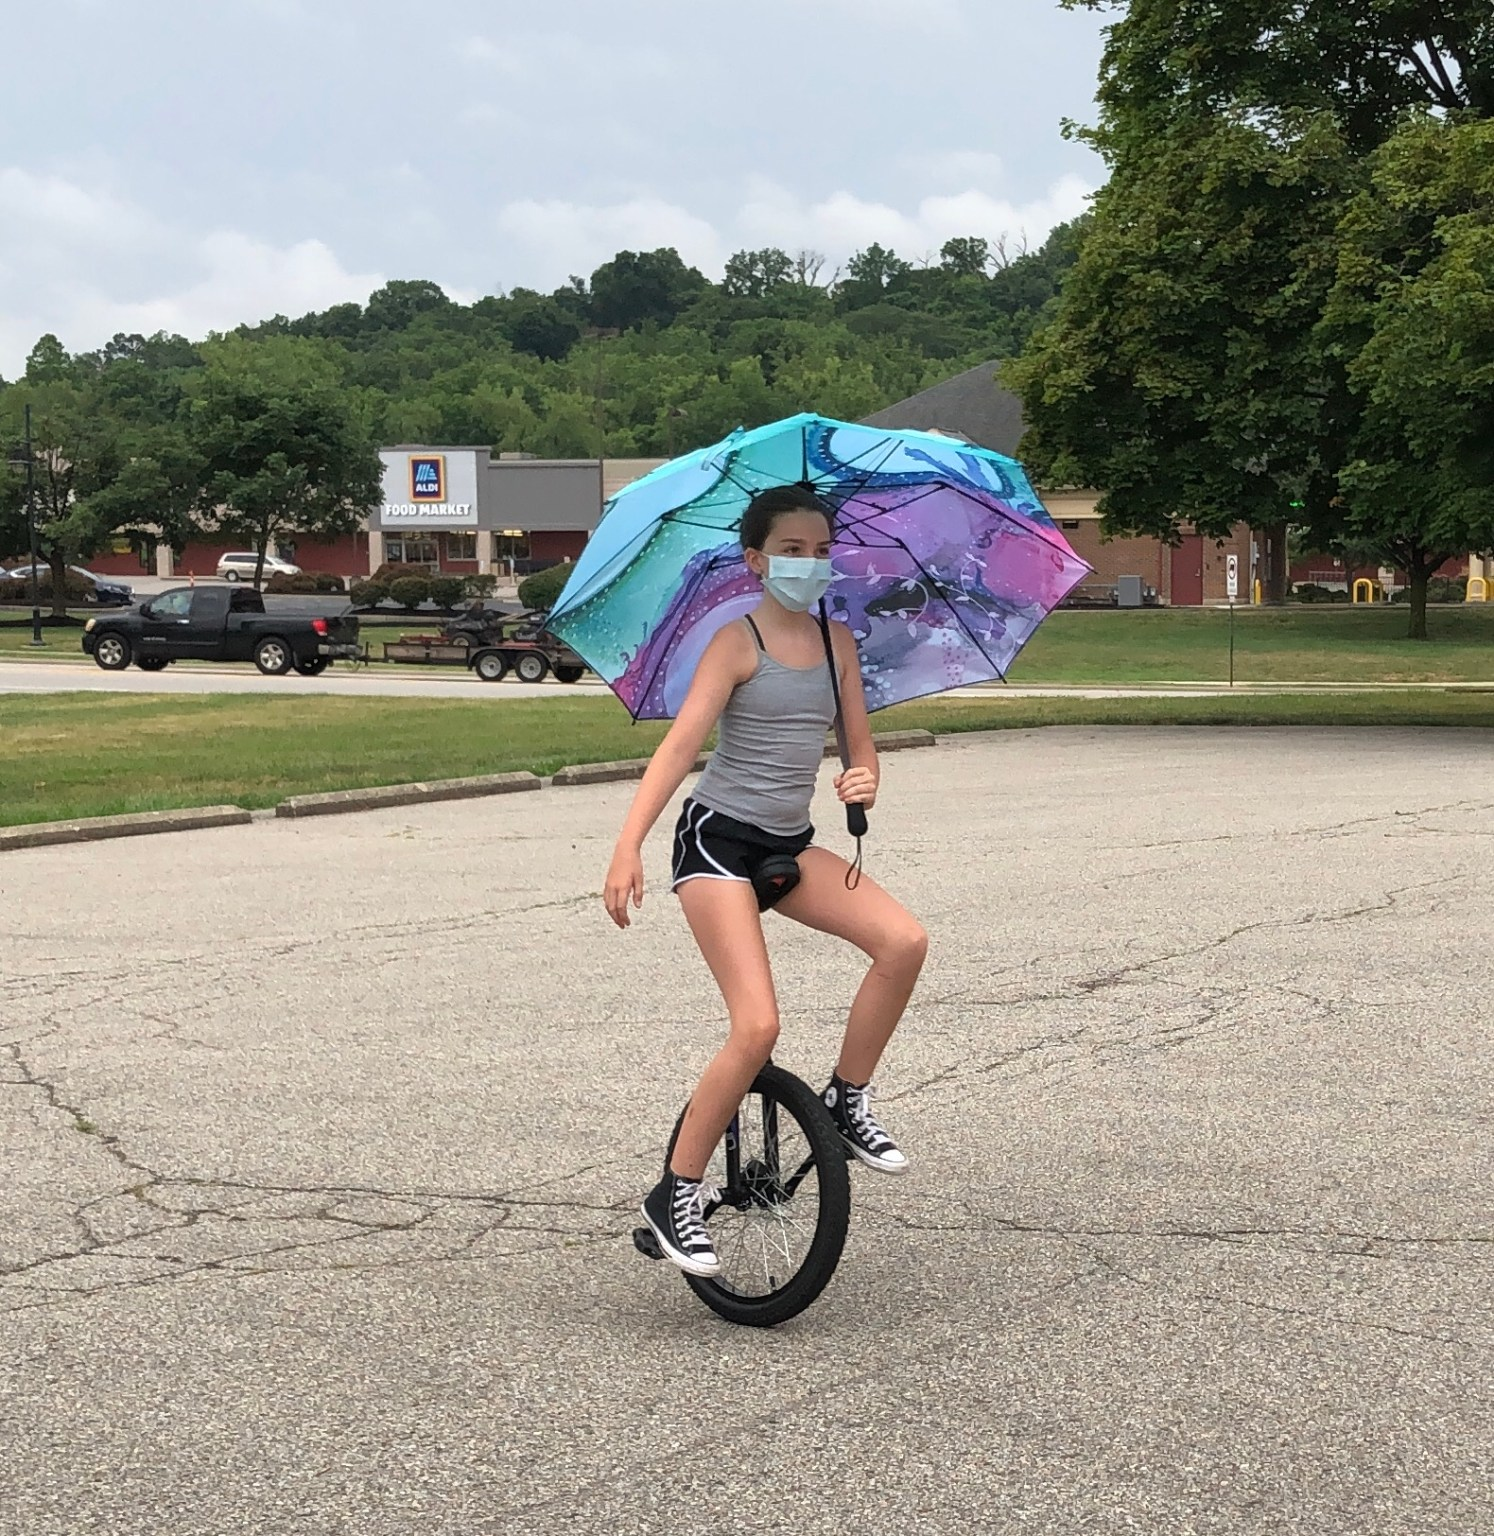 my nose turns red youth circus performer unicycling with an umbrella while wearing a mask